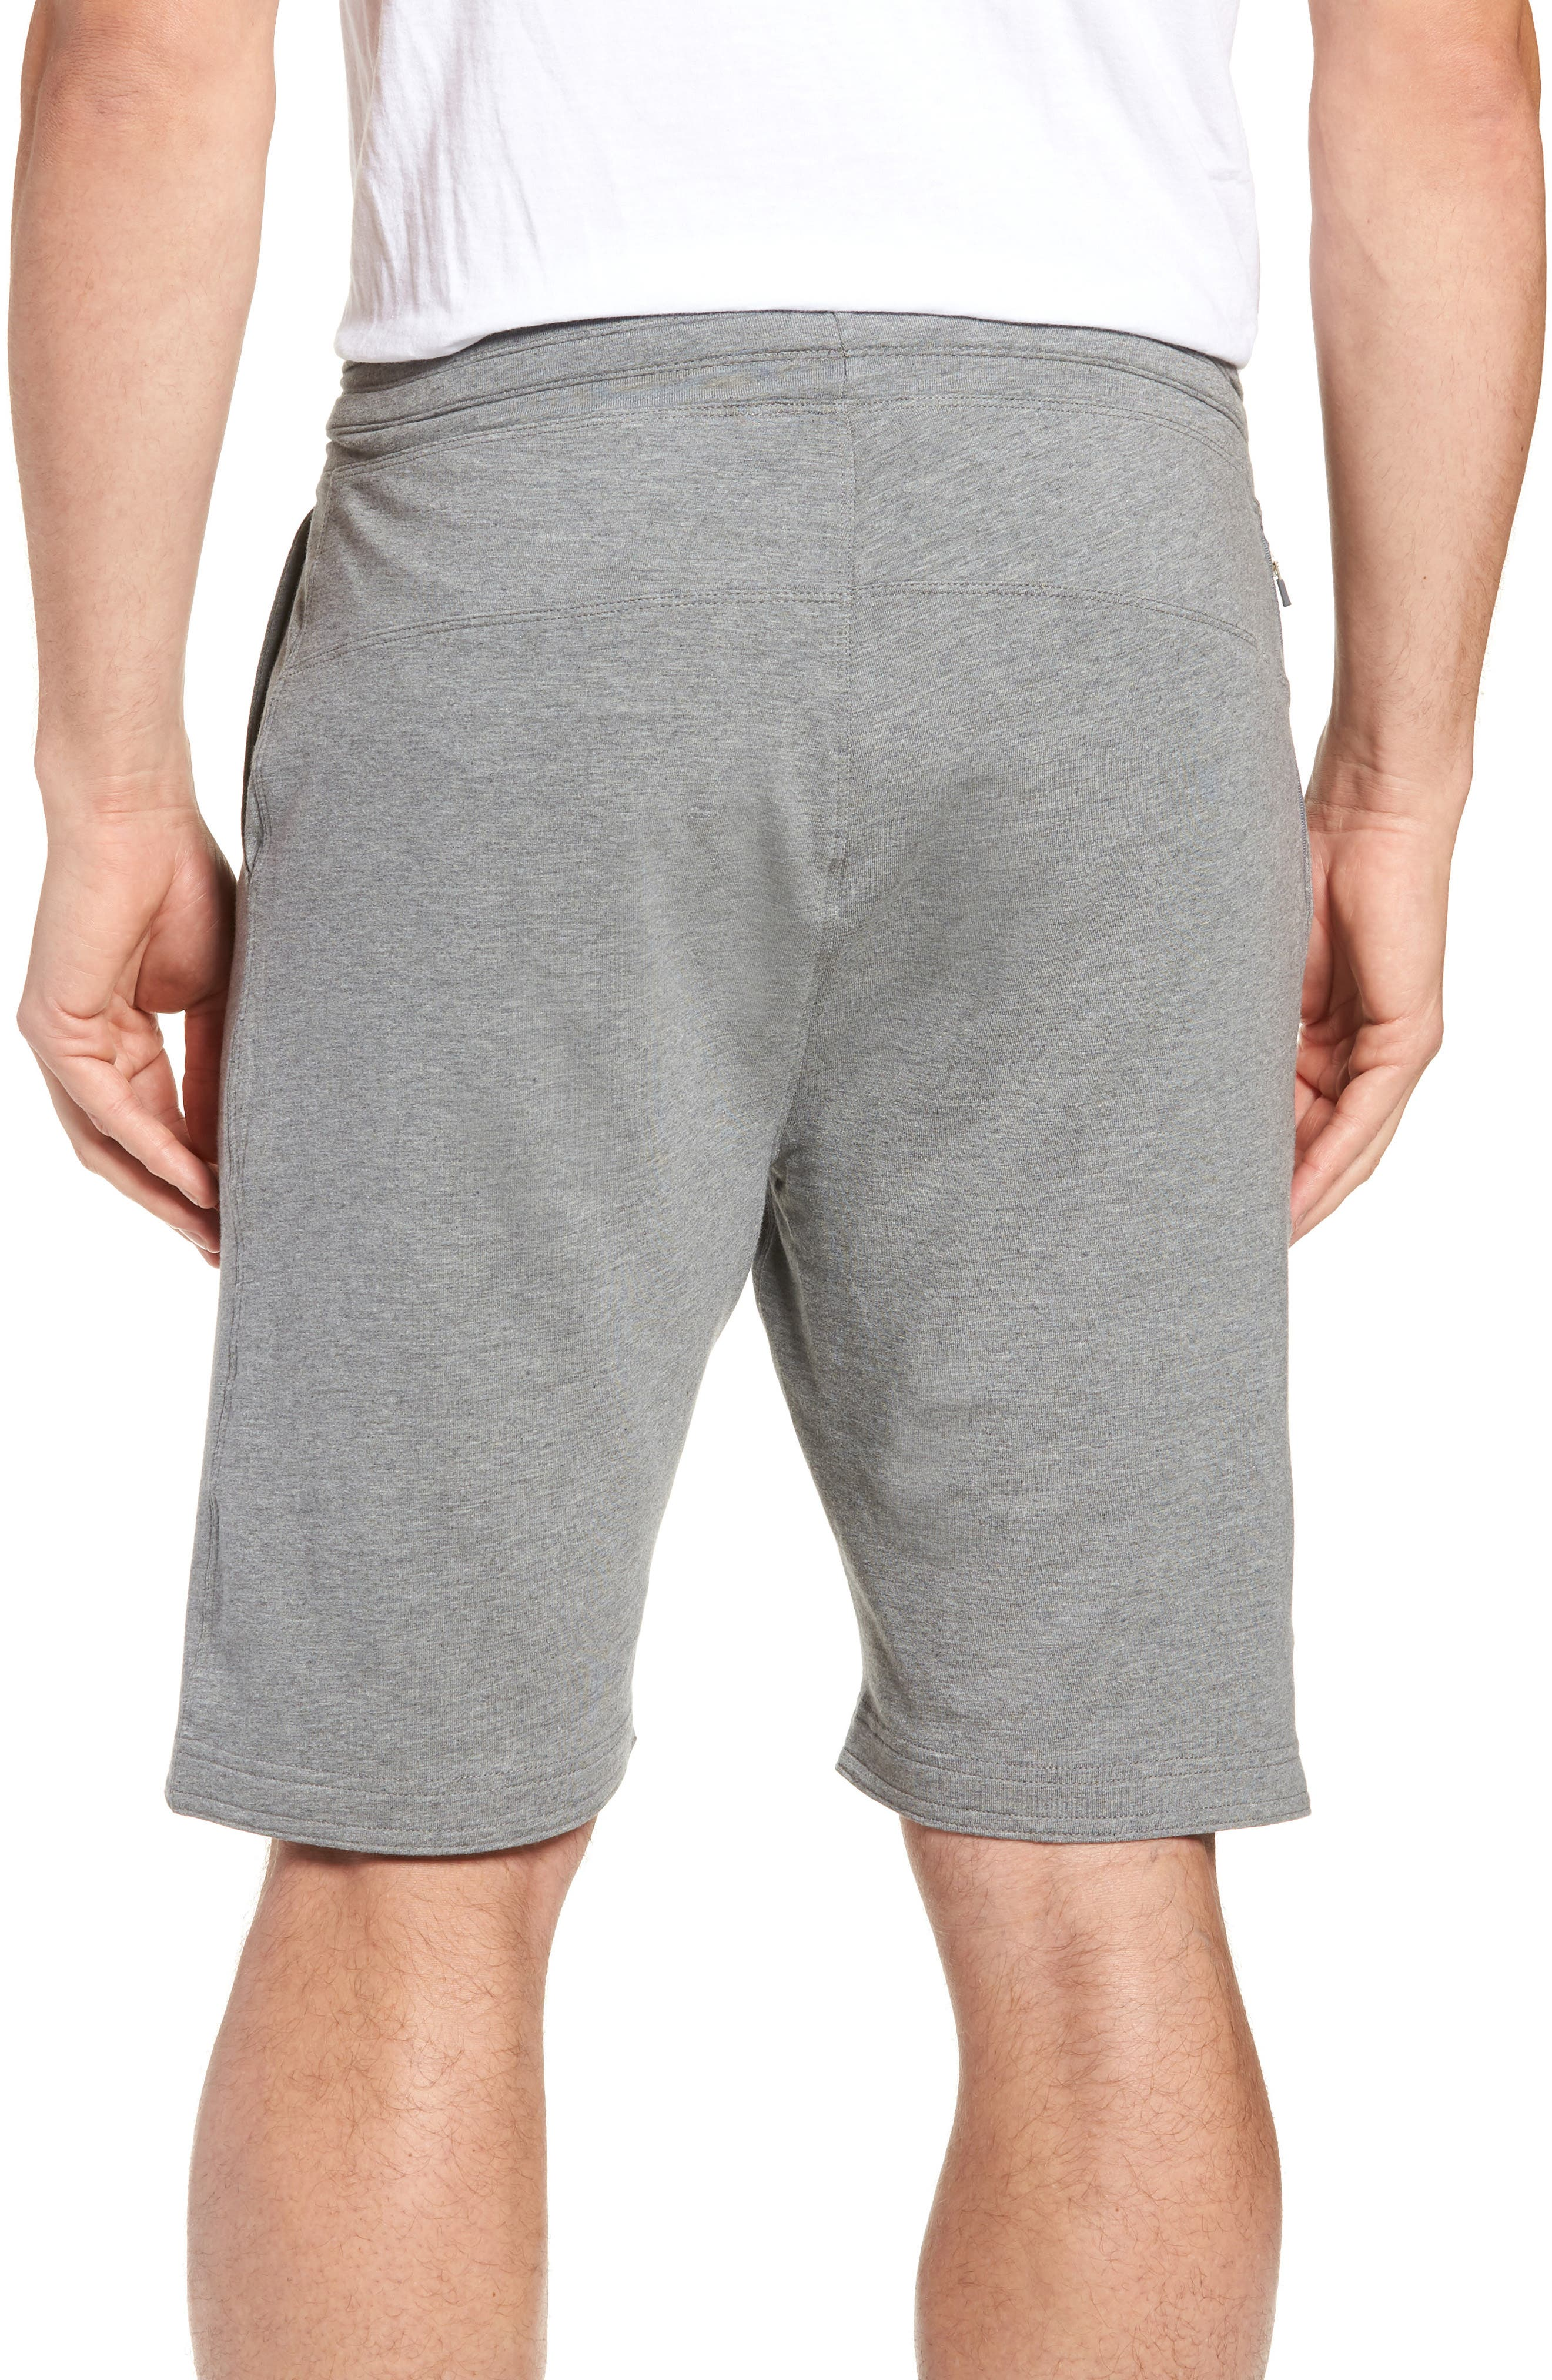 Legacy II Semi-Fitted Knit Athletic Shorts,                             Alternate thumbnail 2, color,                             HEATHER GRAY